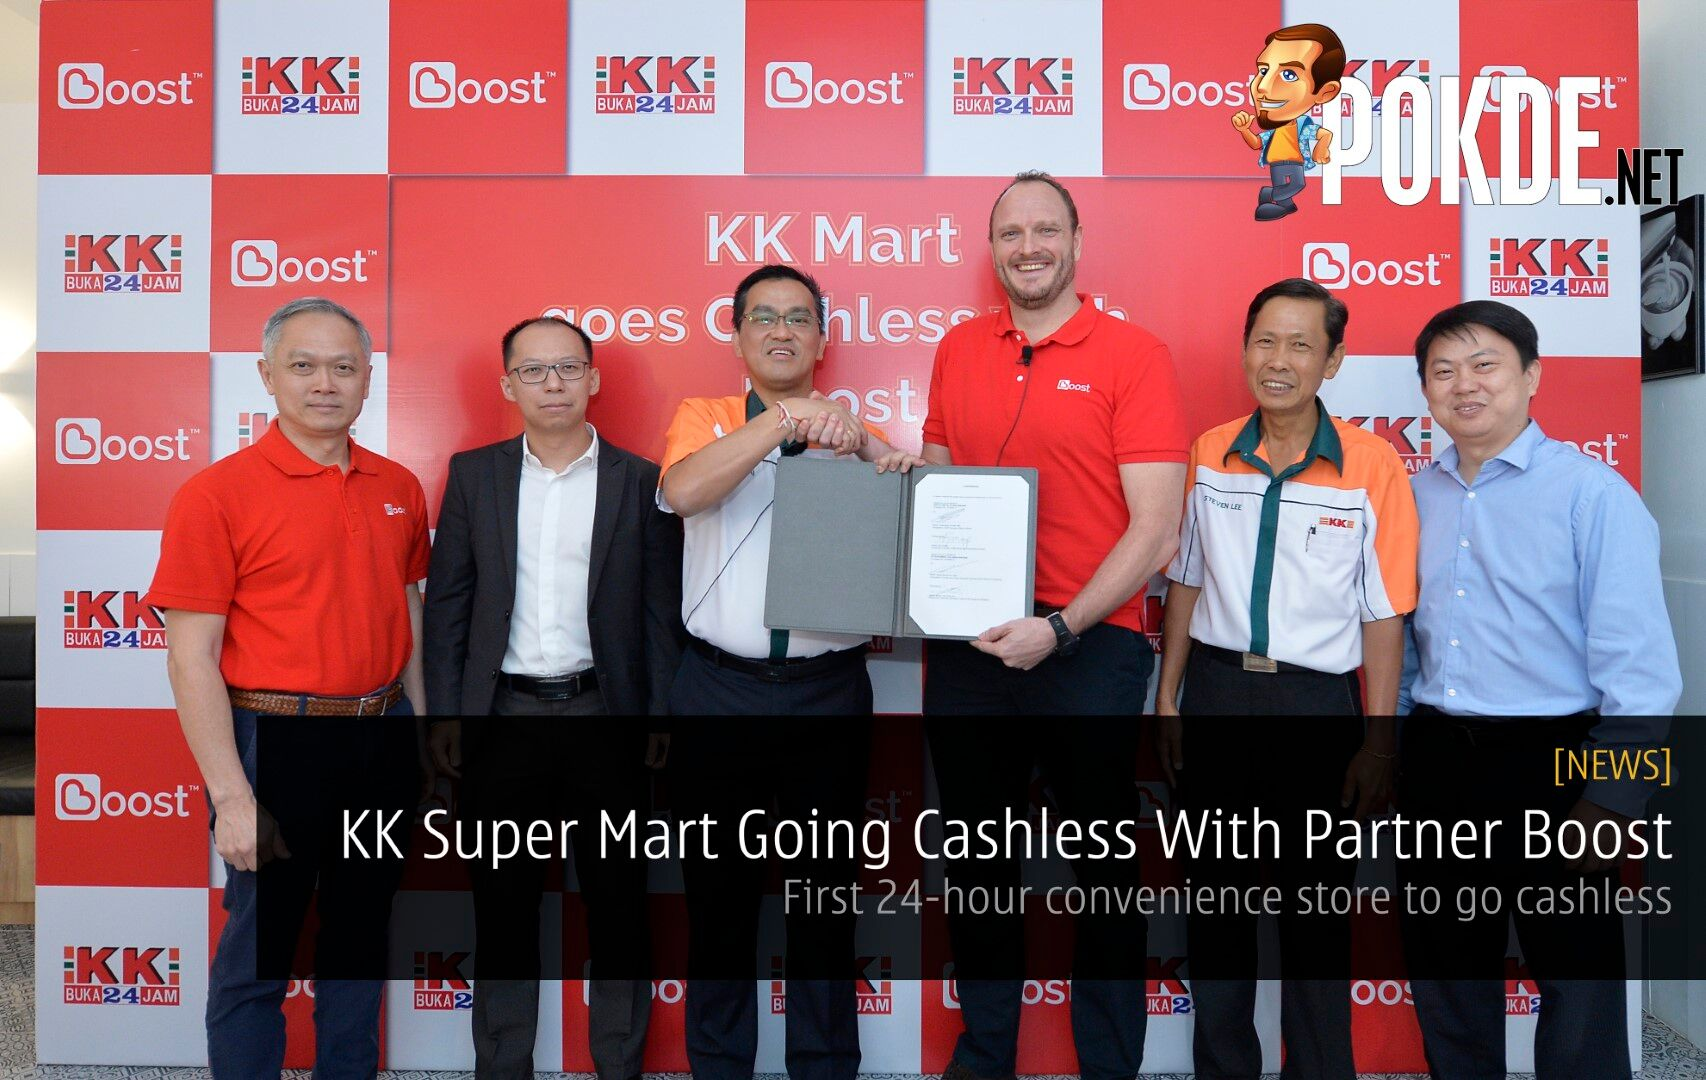 KK Super Mart Going Cashless With Partner Boost- First 24-hour convenience store to go cashless 33